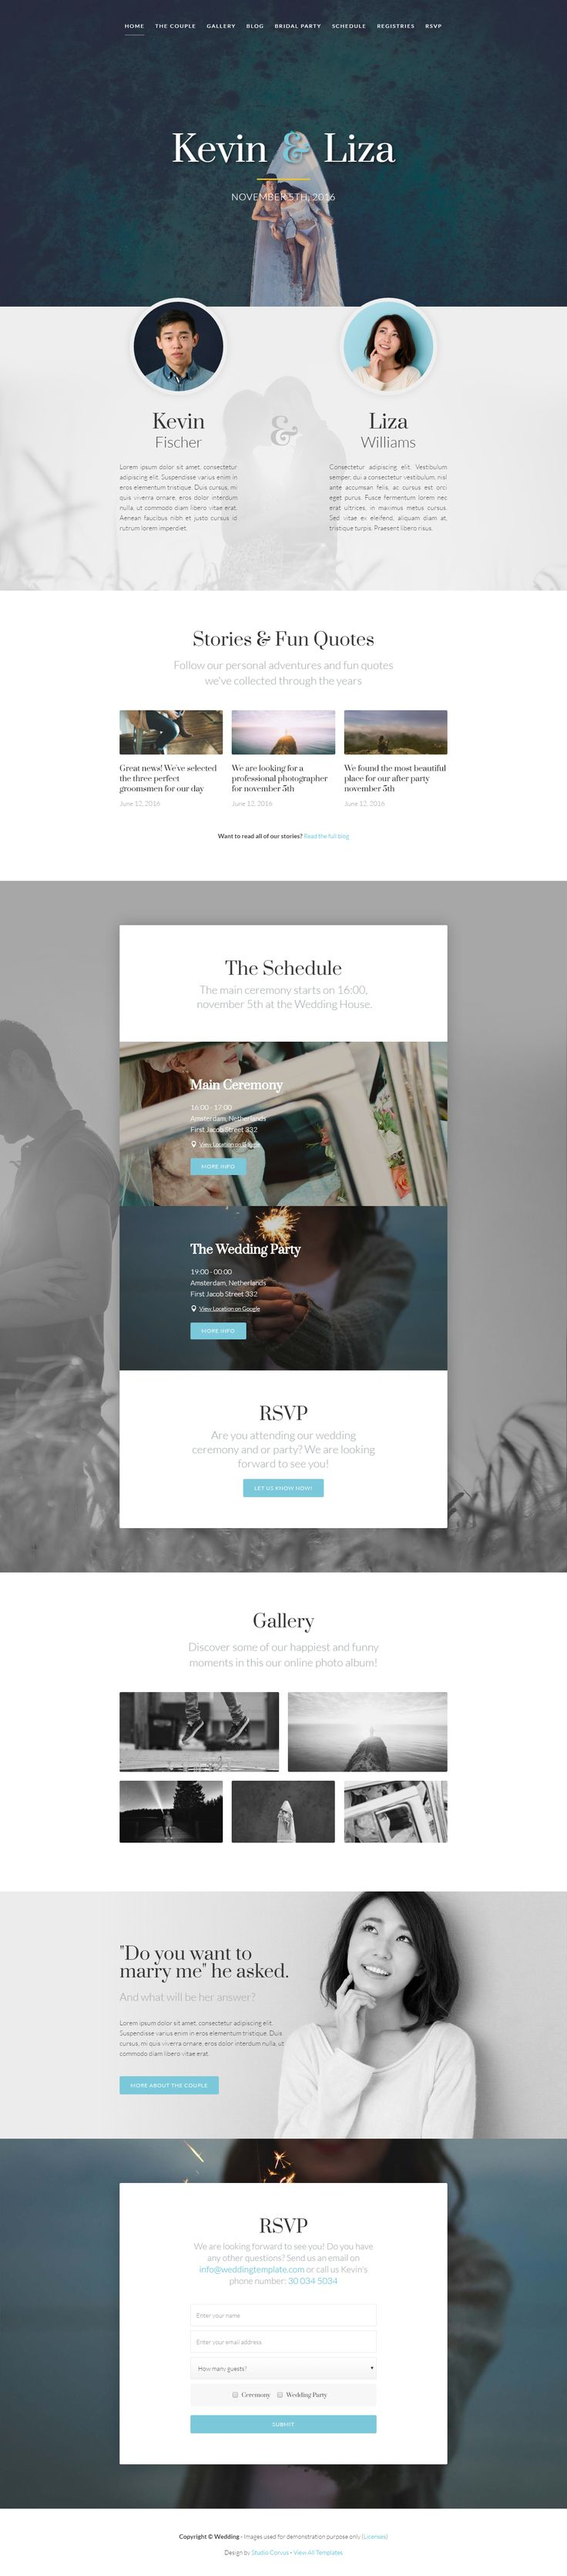 15 Lovely Wedding Website Templates | Best Template